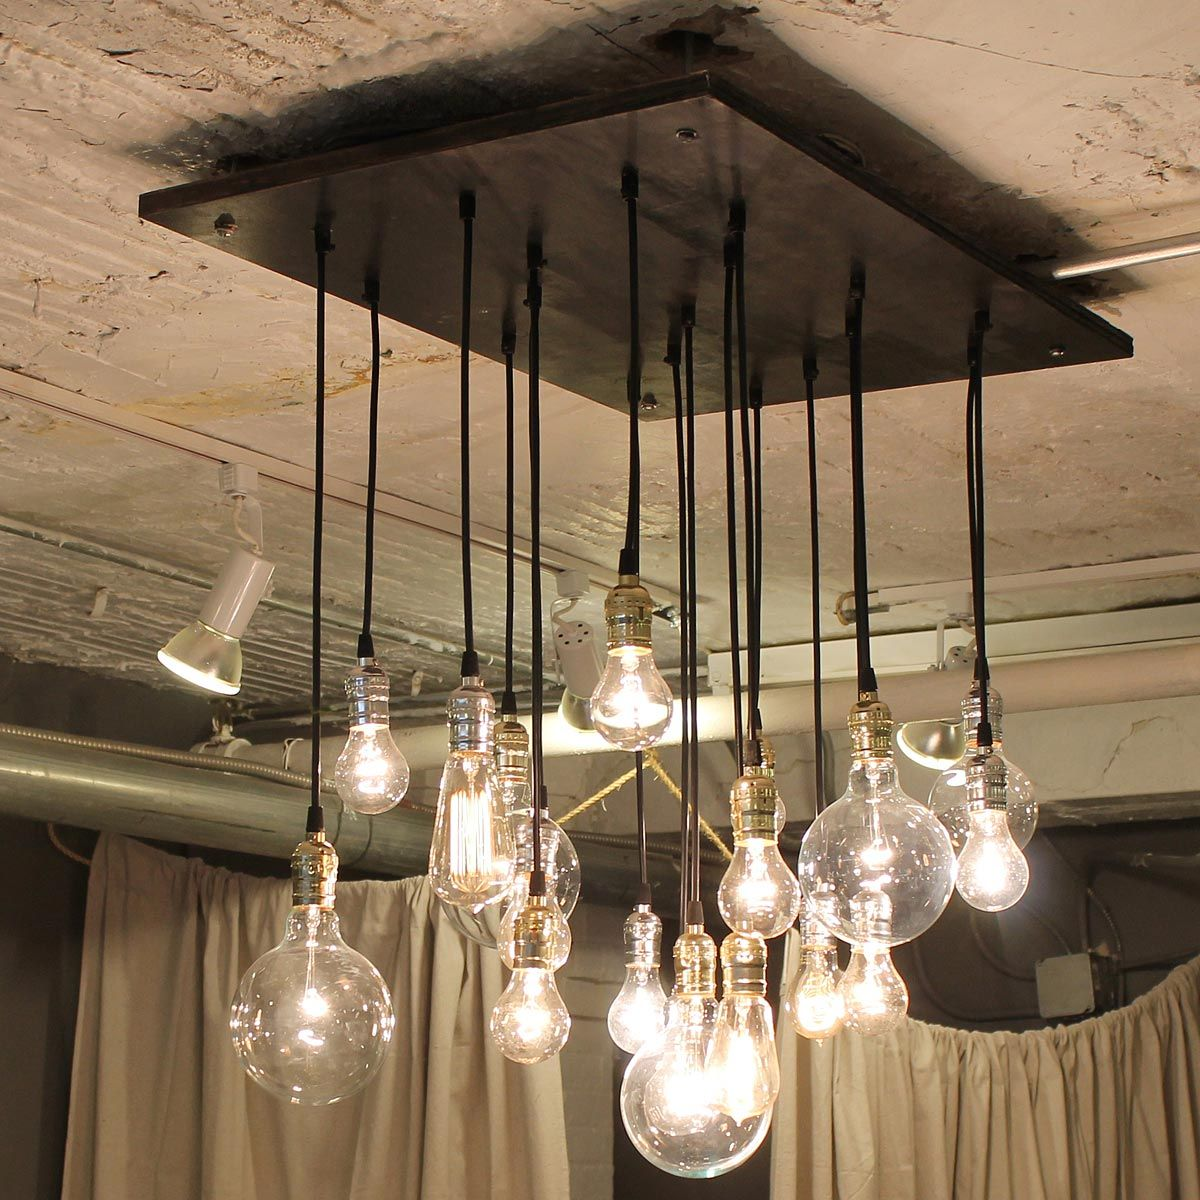 Bring industrial style to your home with this antique bulb and reclaimed  wood chandelier.